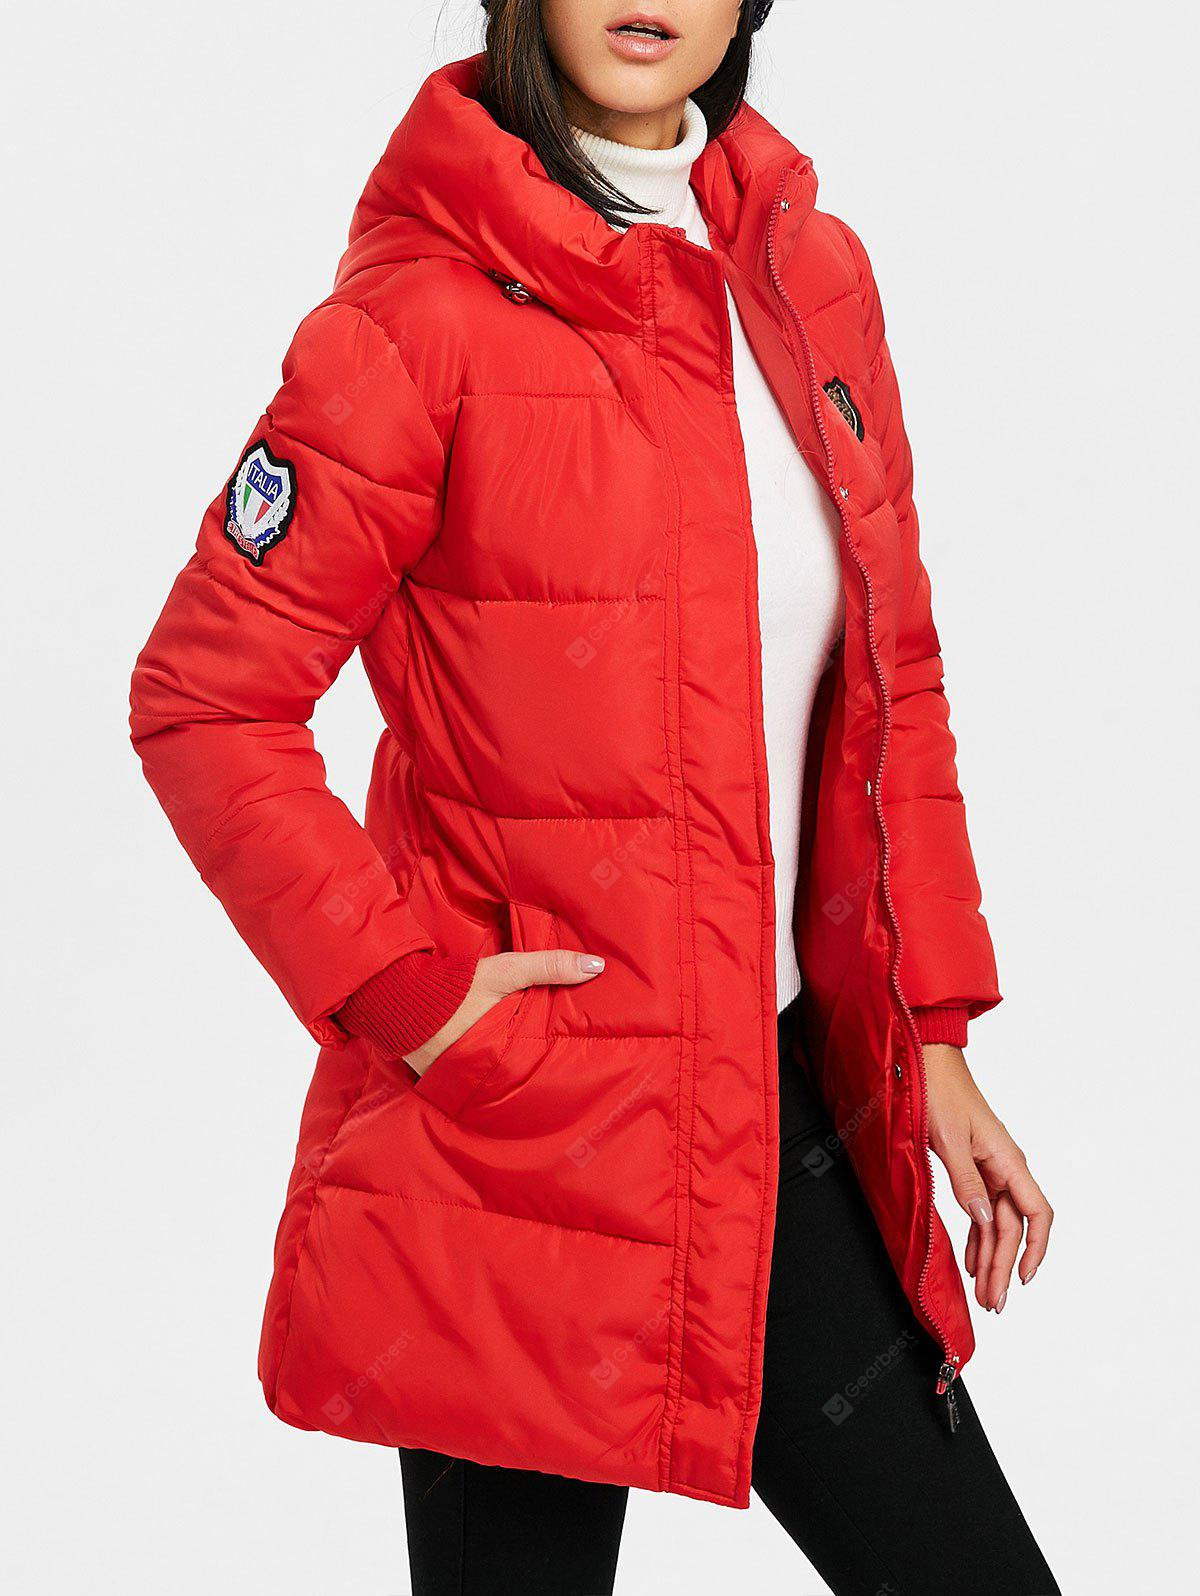 Single Breasted Hooded Puffer Jacket